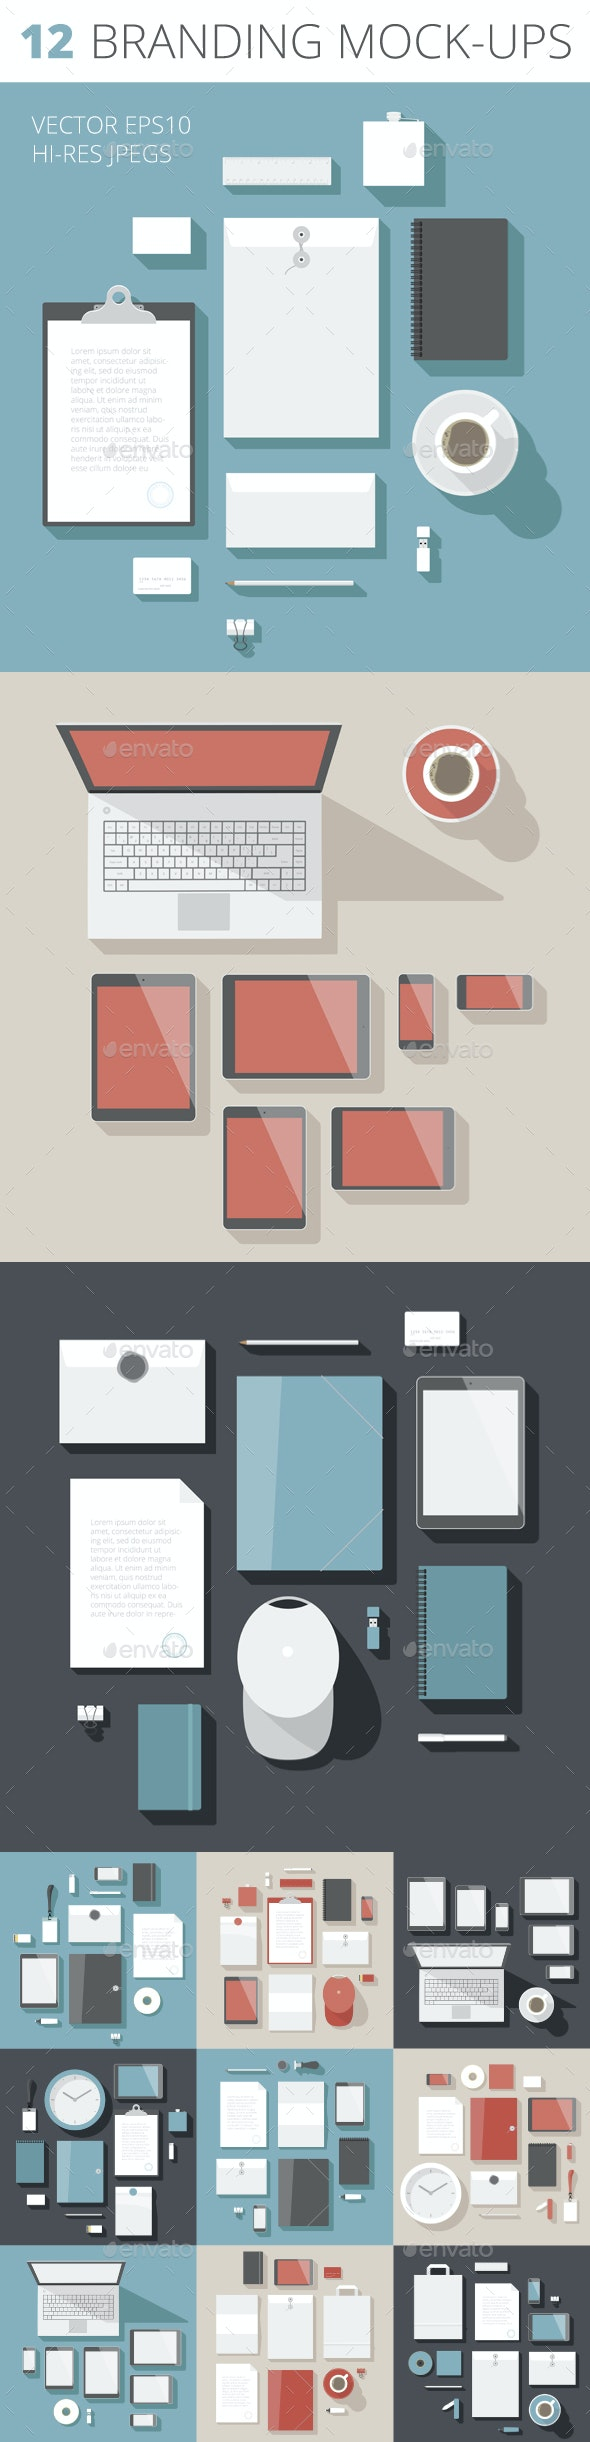 Flat Design Corporate Identity Mock-up Template - Concepts Business